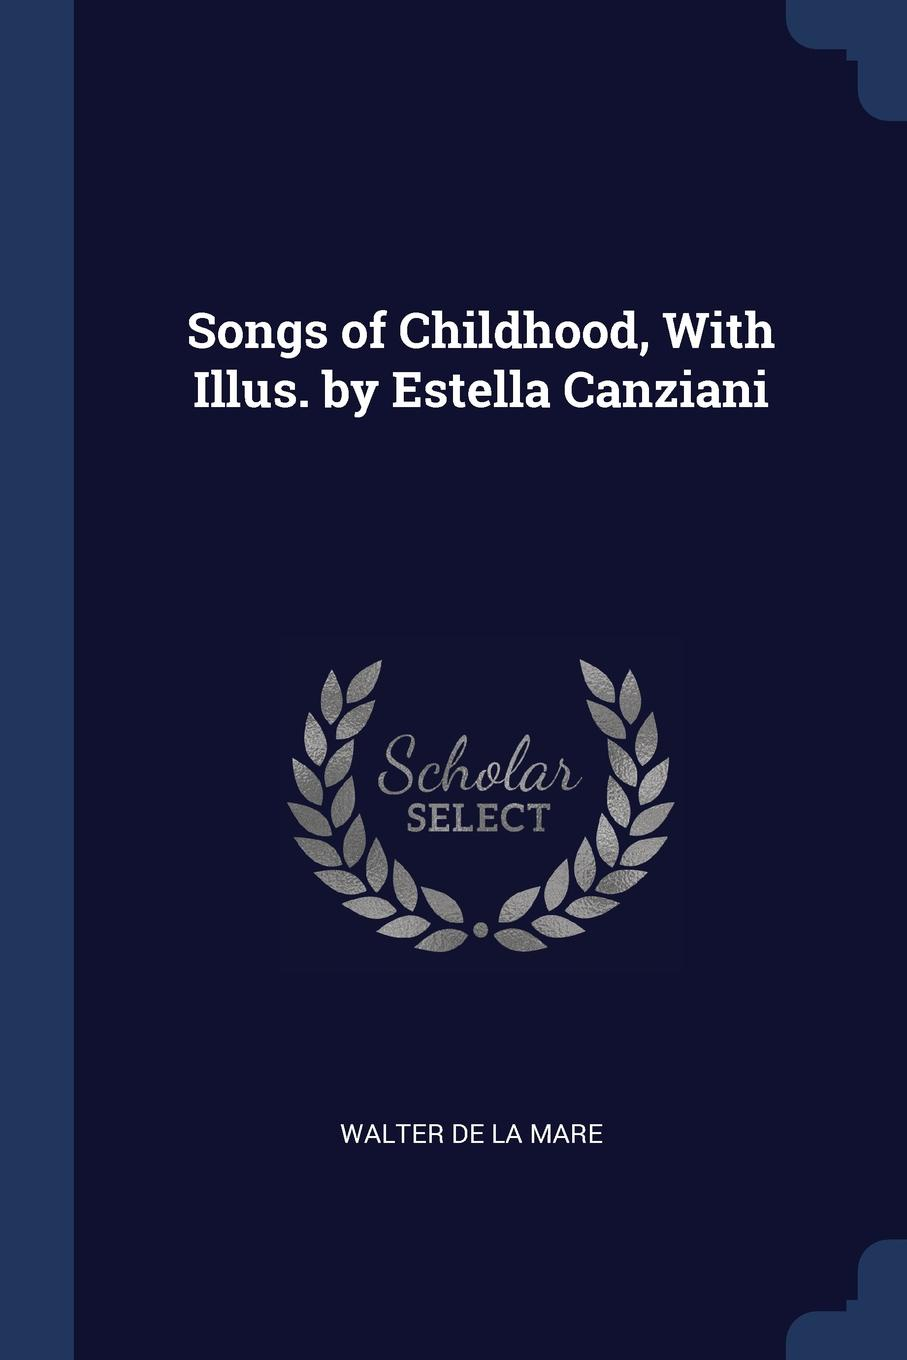 Songs of Childhood, With Illus. by Estella Canziani. Walter De La Mare